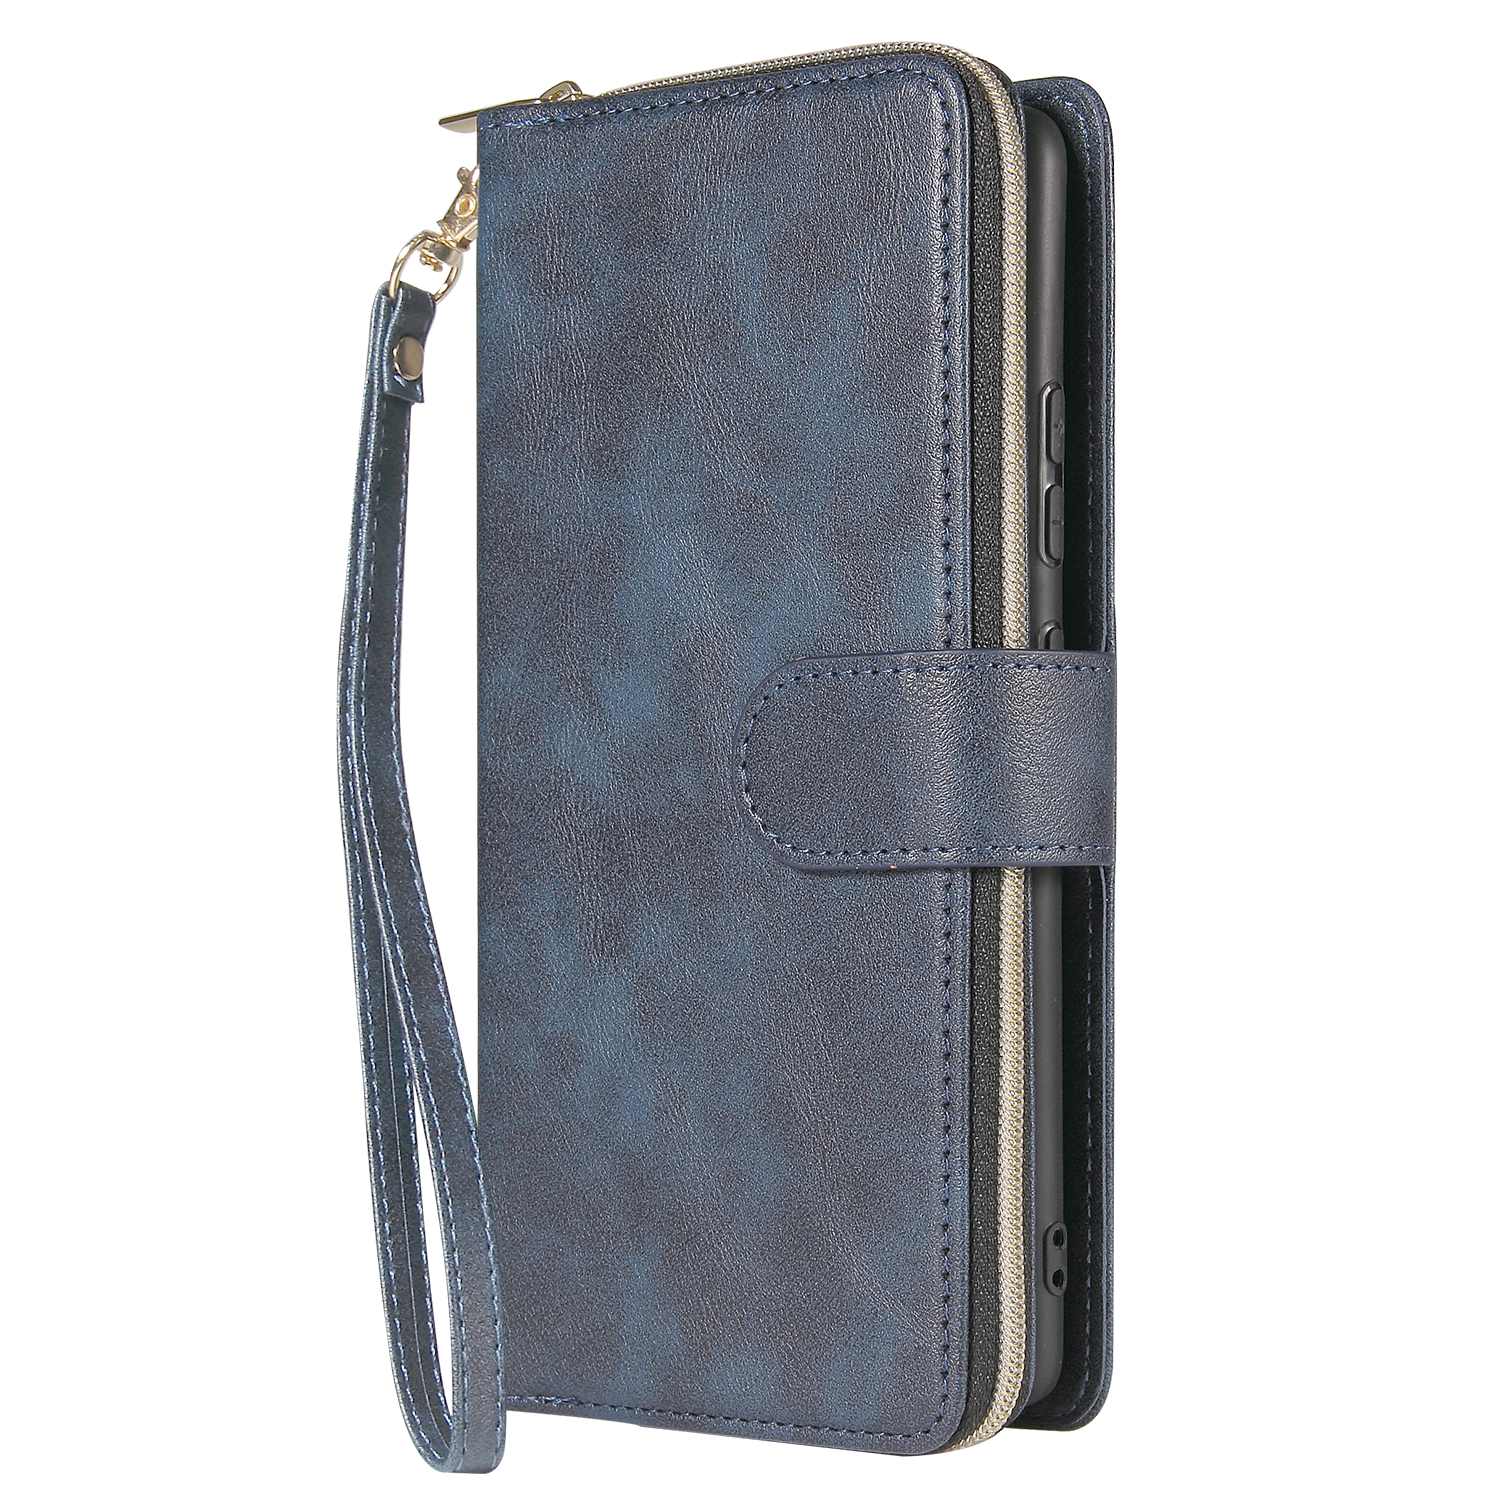 For Samsung S10/S20/S10E/ S10 Plus Pu Leather  Mobile Phone Cover Zipper Card Bag + Wrist Strap blue